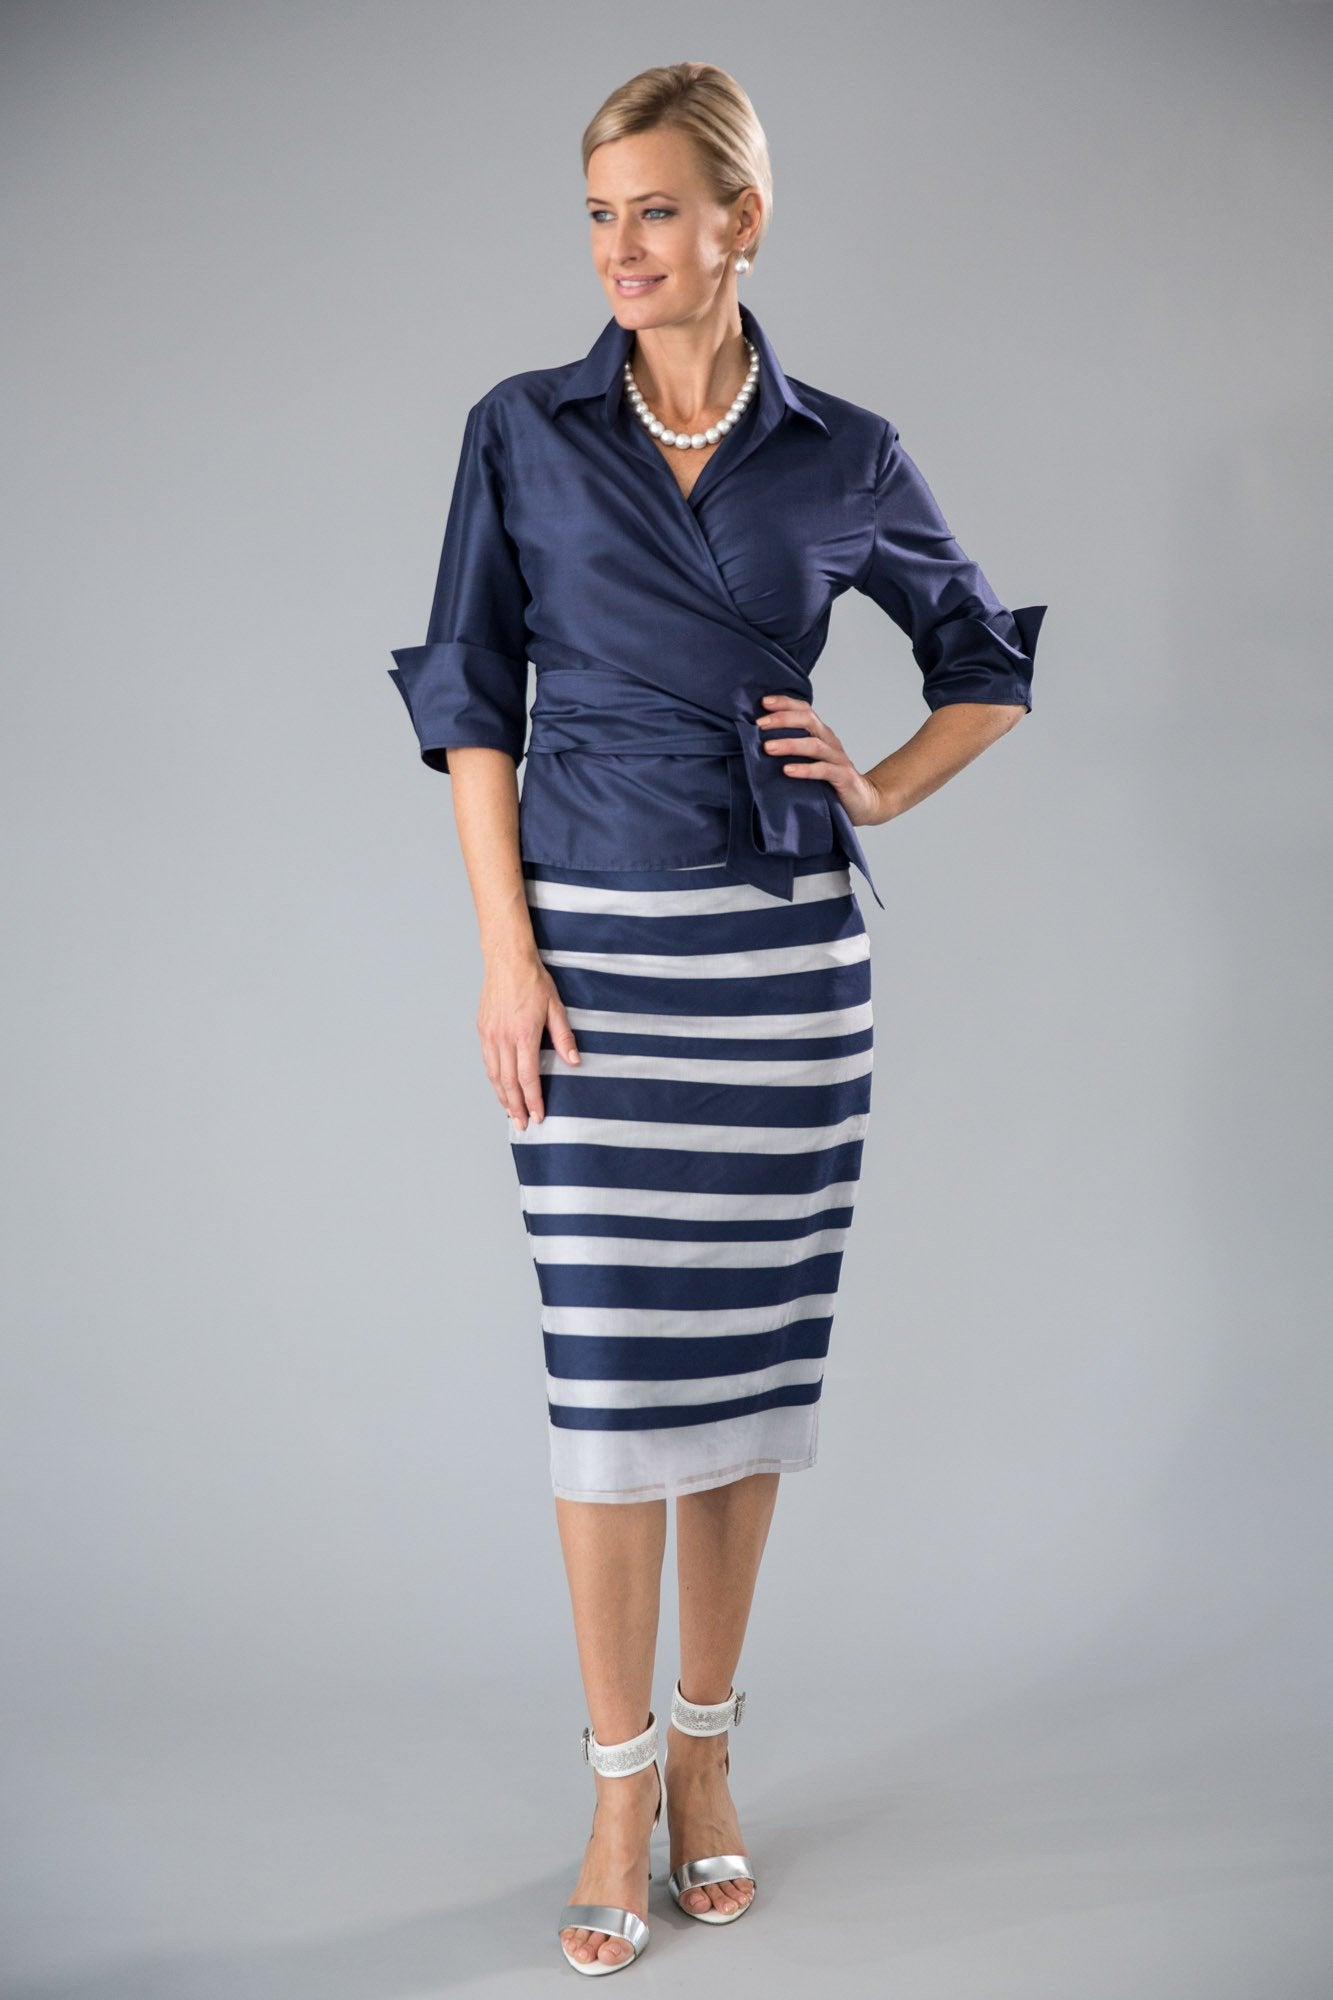 Zambi Skirt - Navy + Silver for the Mother of the Bride / Groom